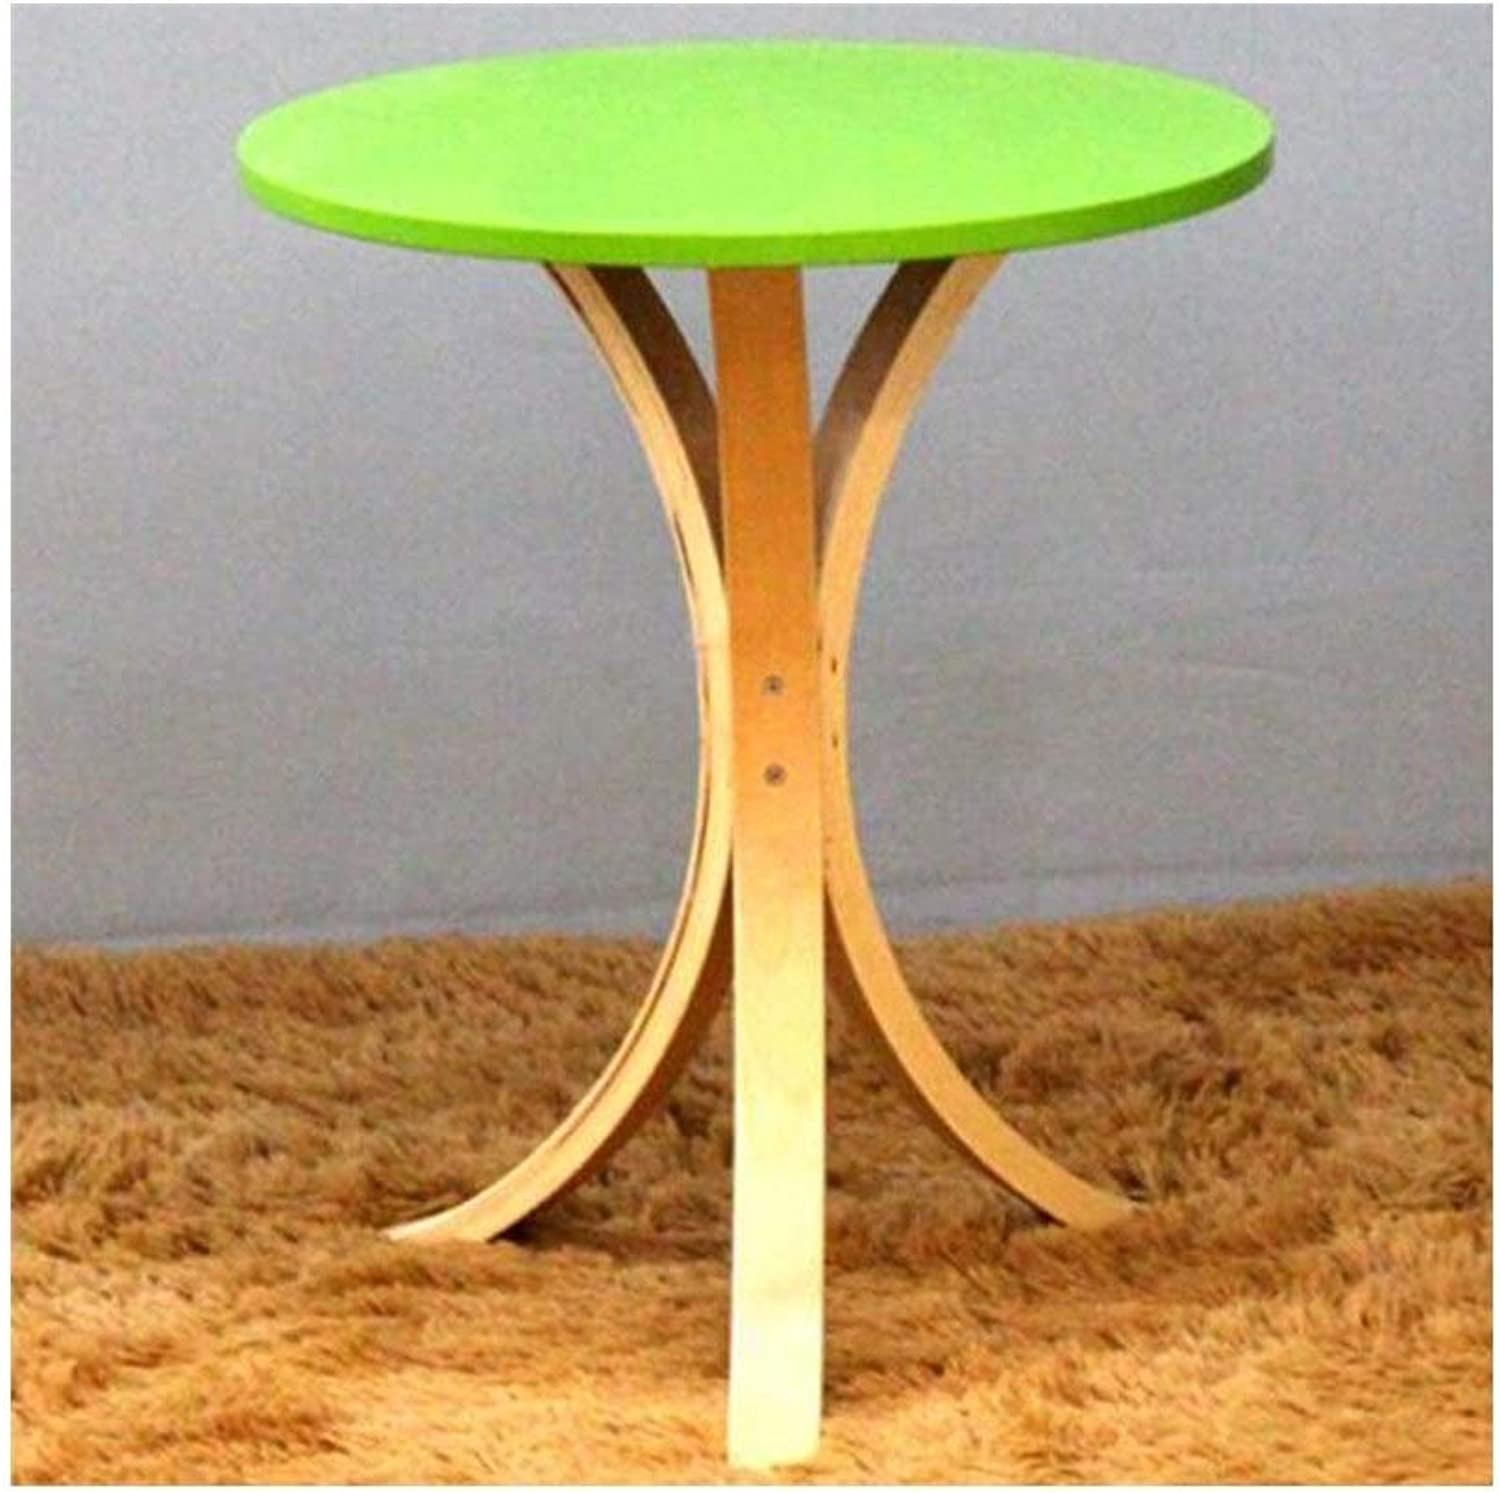 LQQGXLPortable Folding Table Solid Wood Round Table, Coffee Table, Creative Modern Minimalist Coffee Table, (color   Green)